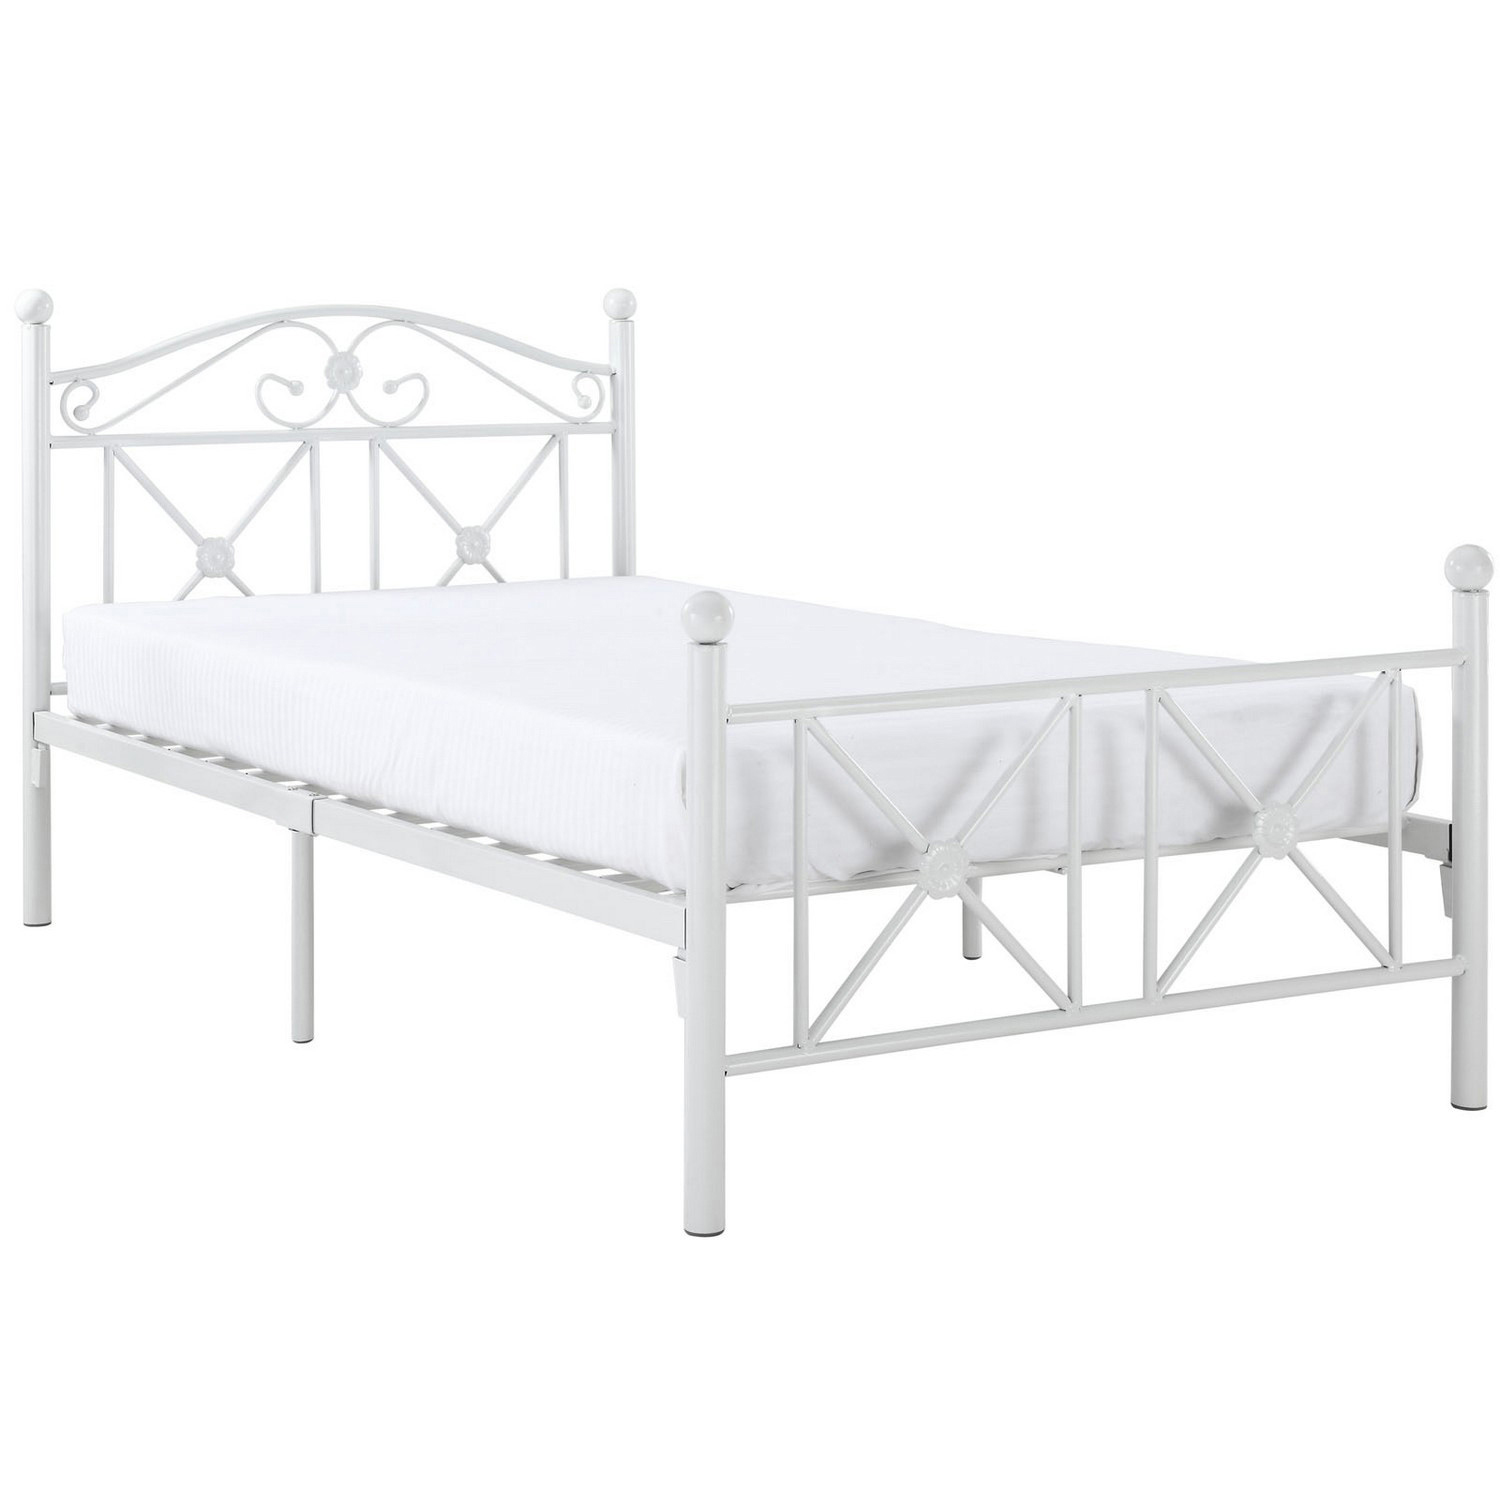 Modway Cottage Twin Bed - White